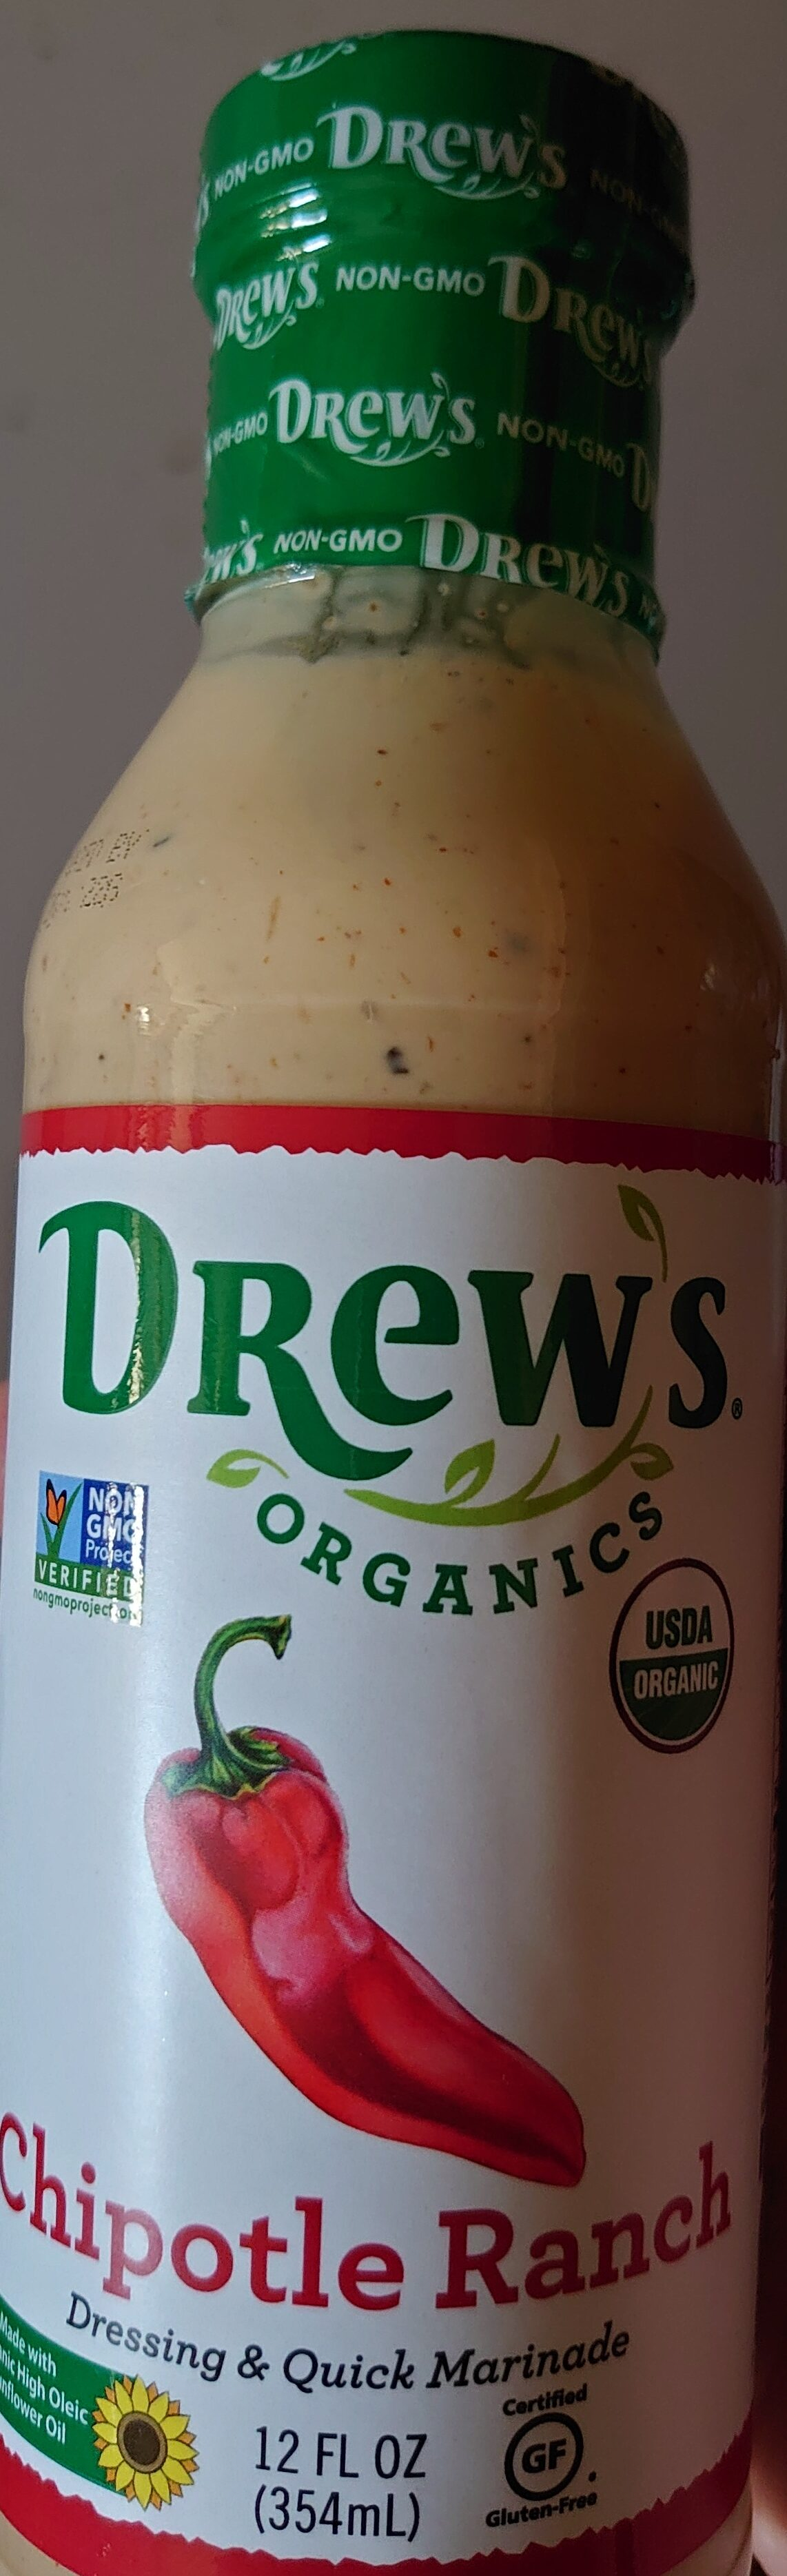 Drew's Chipotle Ranch Dressing & quick marinade - Product - en